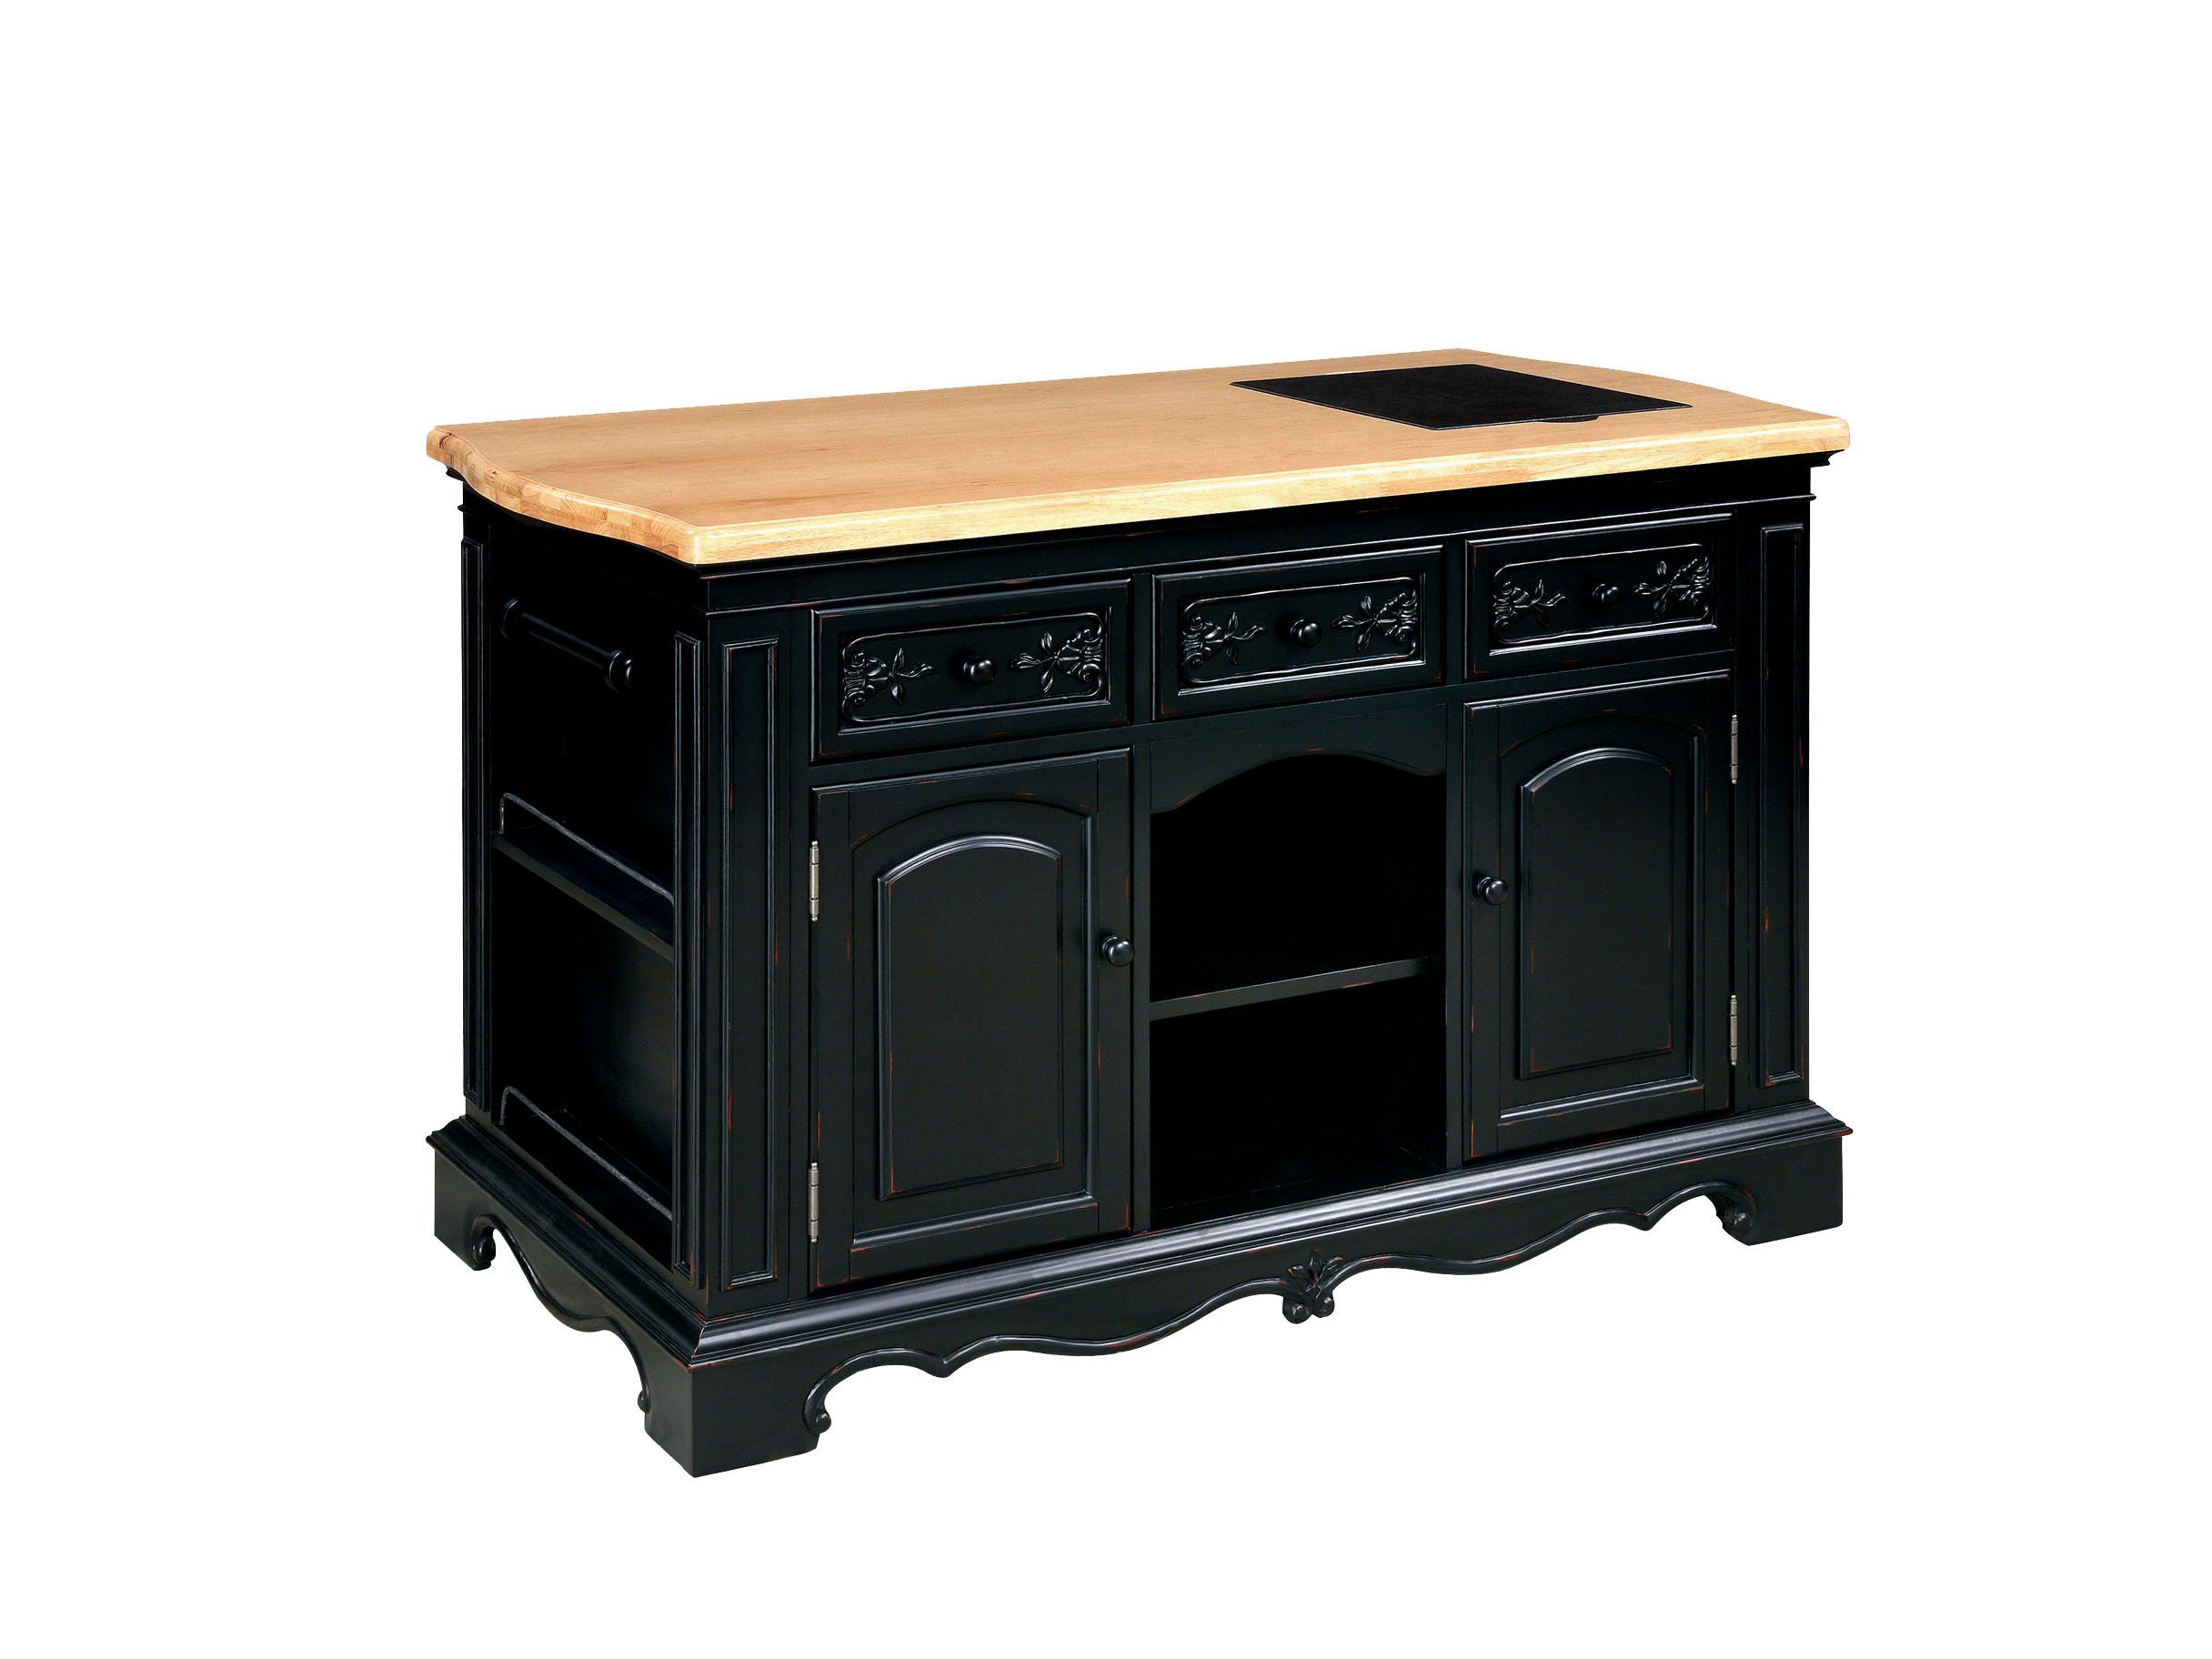 Powell Pennfield Kitchen Island Black Natural